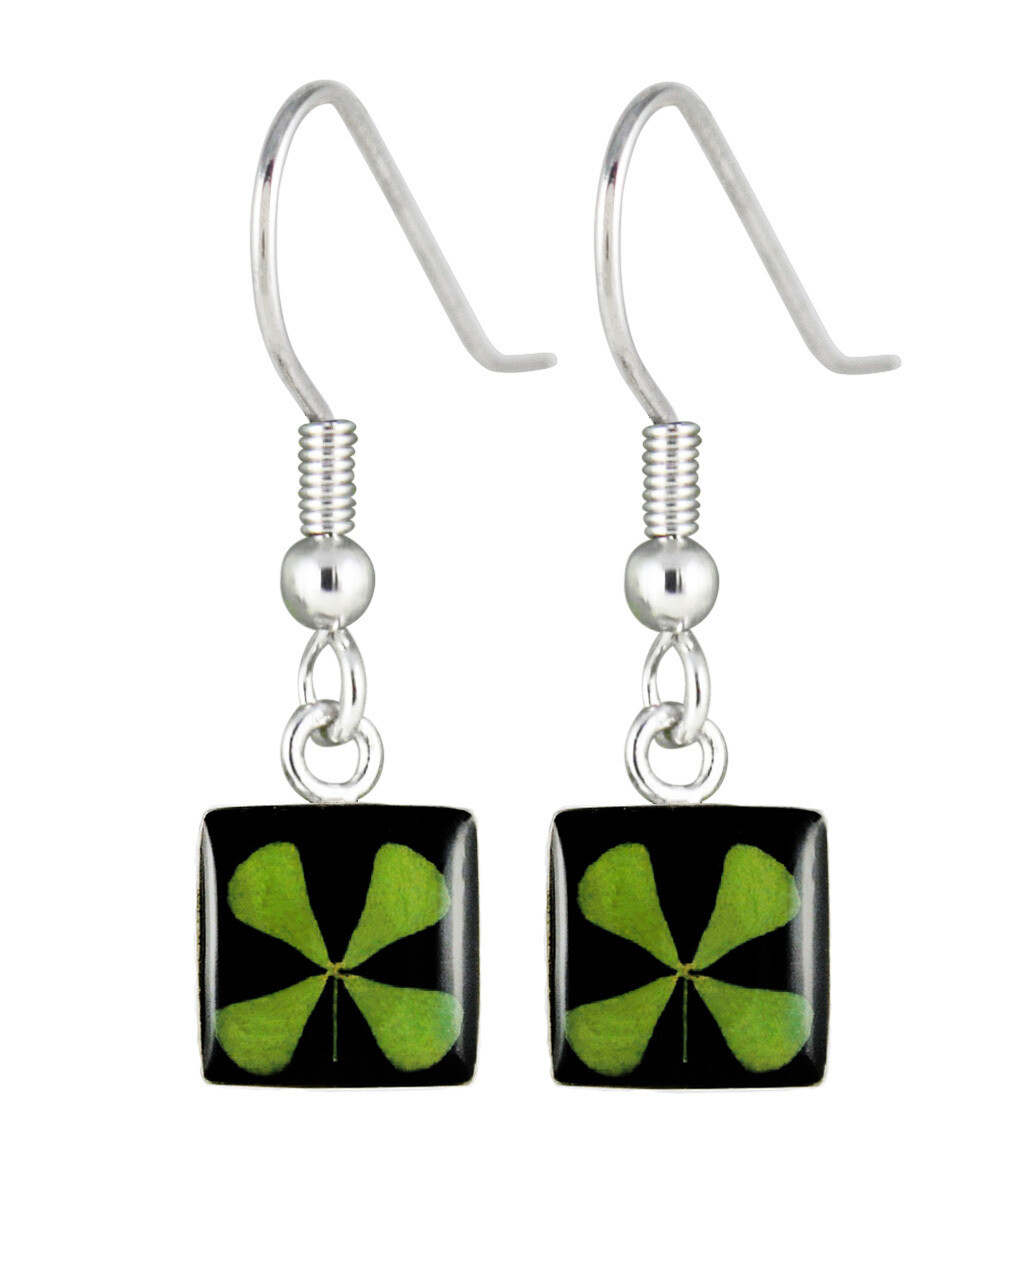 Four-Leaf Clover Square Hanging Earrings, Black Background.